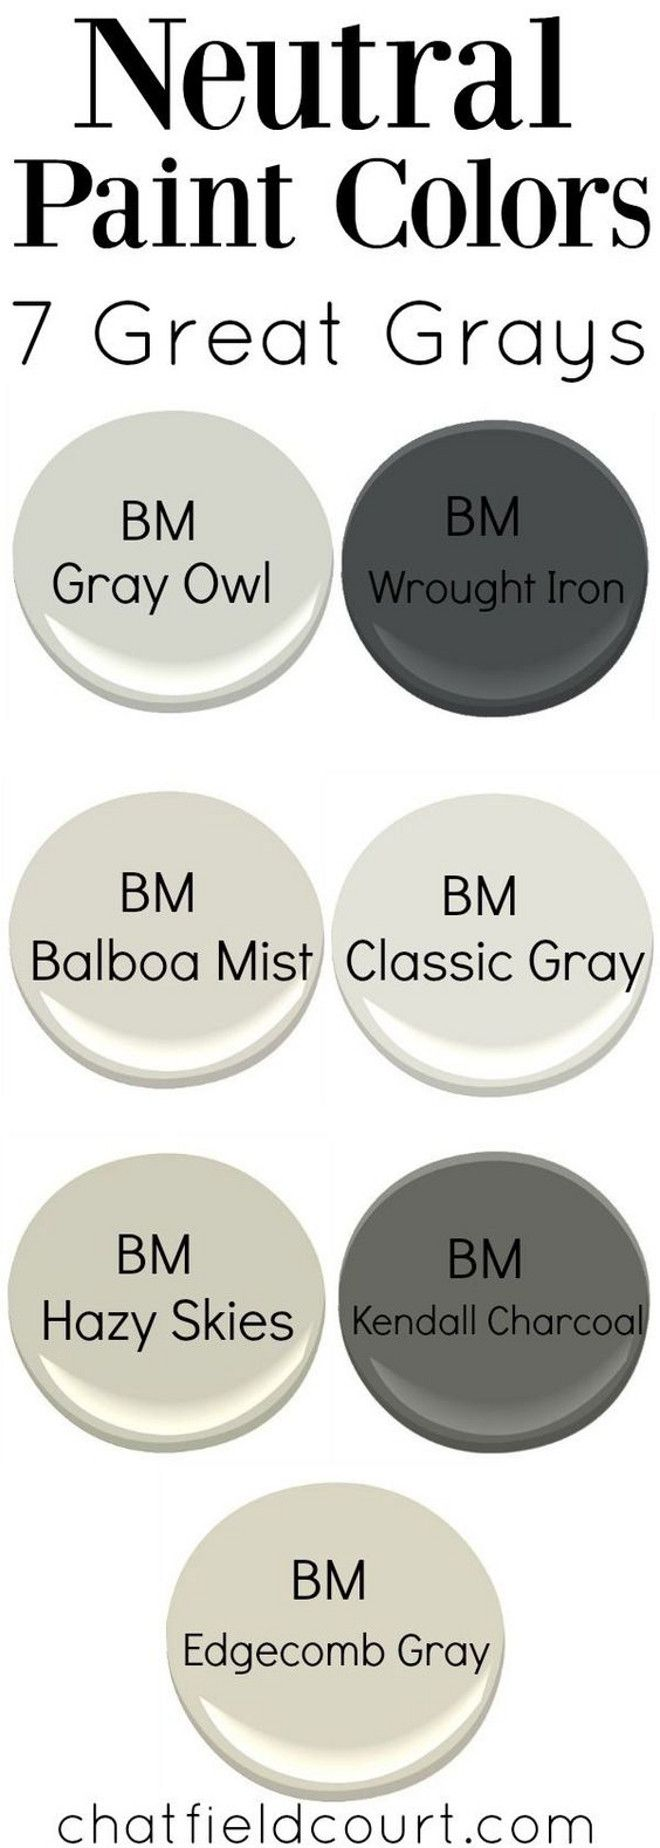 7 Great Gray Paint Colors by Benjamin Moore 7 Great Gray Paint Colors by Benjamin Moore    Home Bunch  . Great Neutral Paint Colors Benjamin Moore. Home Design Ideas